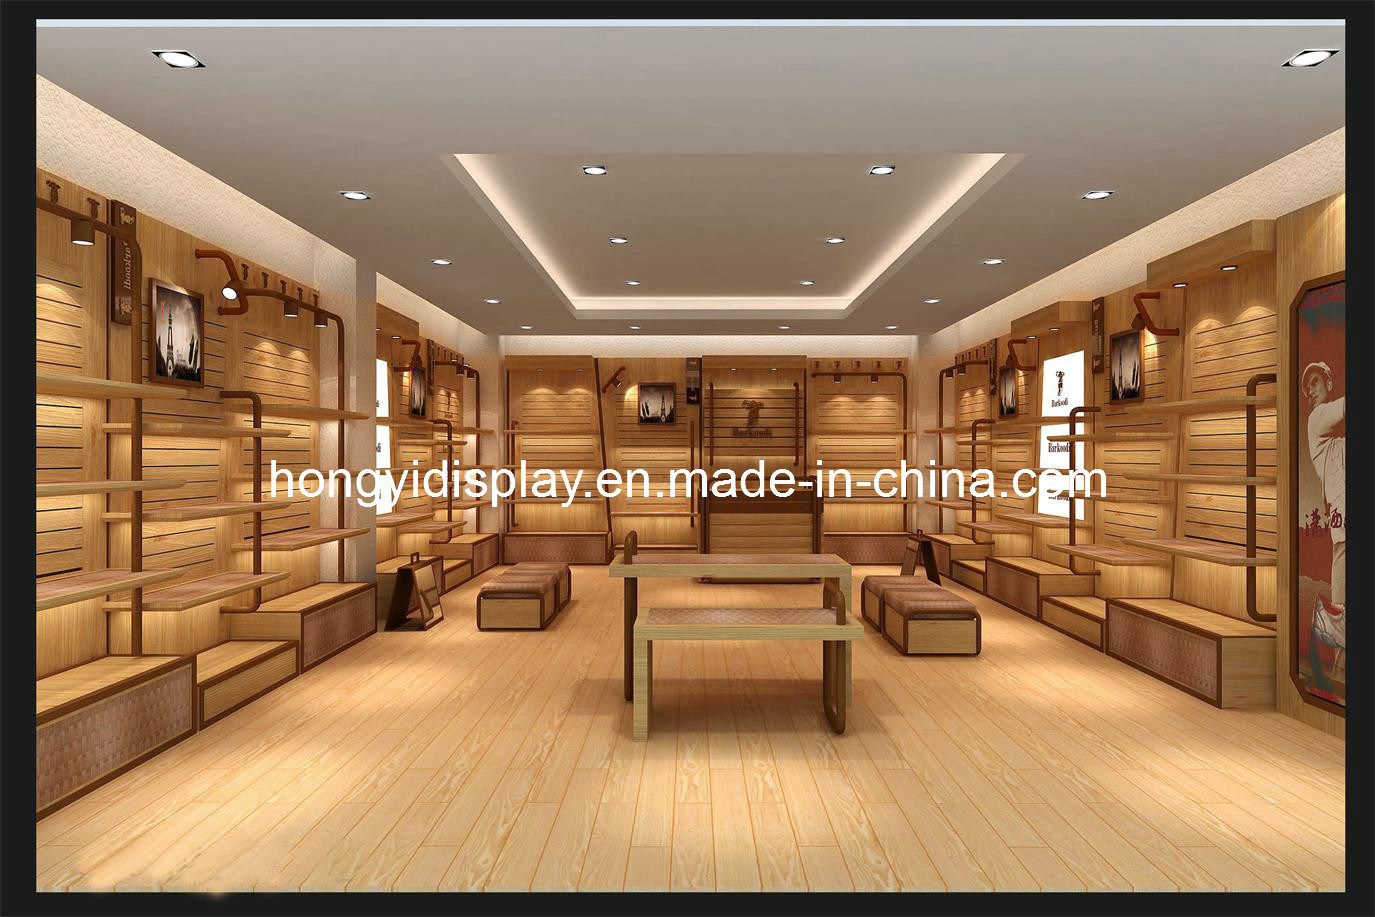 china men shoes shop decoration for store fixture china. Black Bedroom Furniture Sets. Home Design Ideas